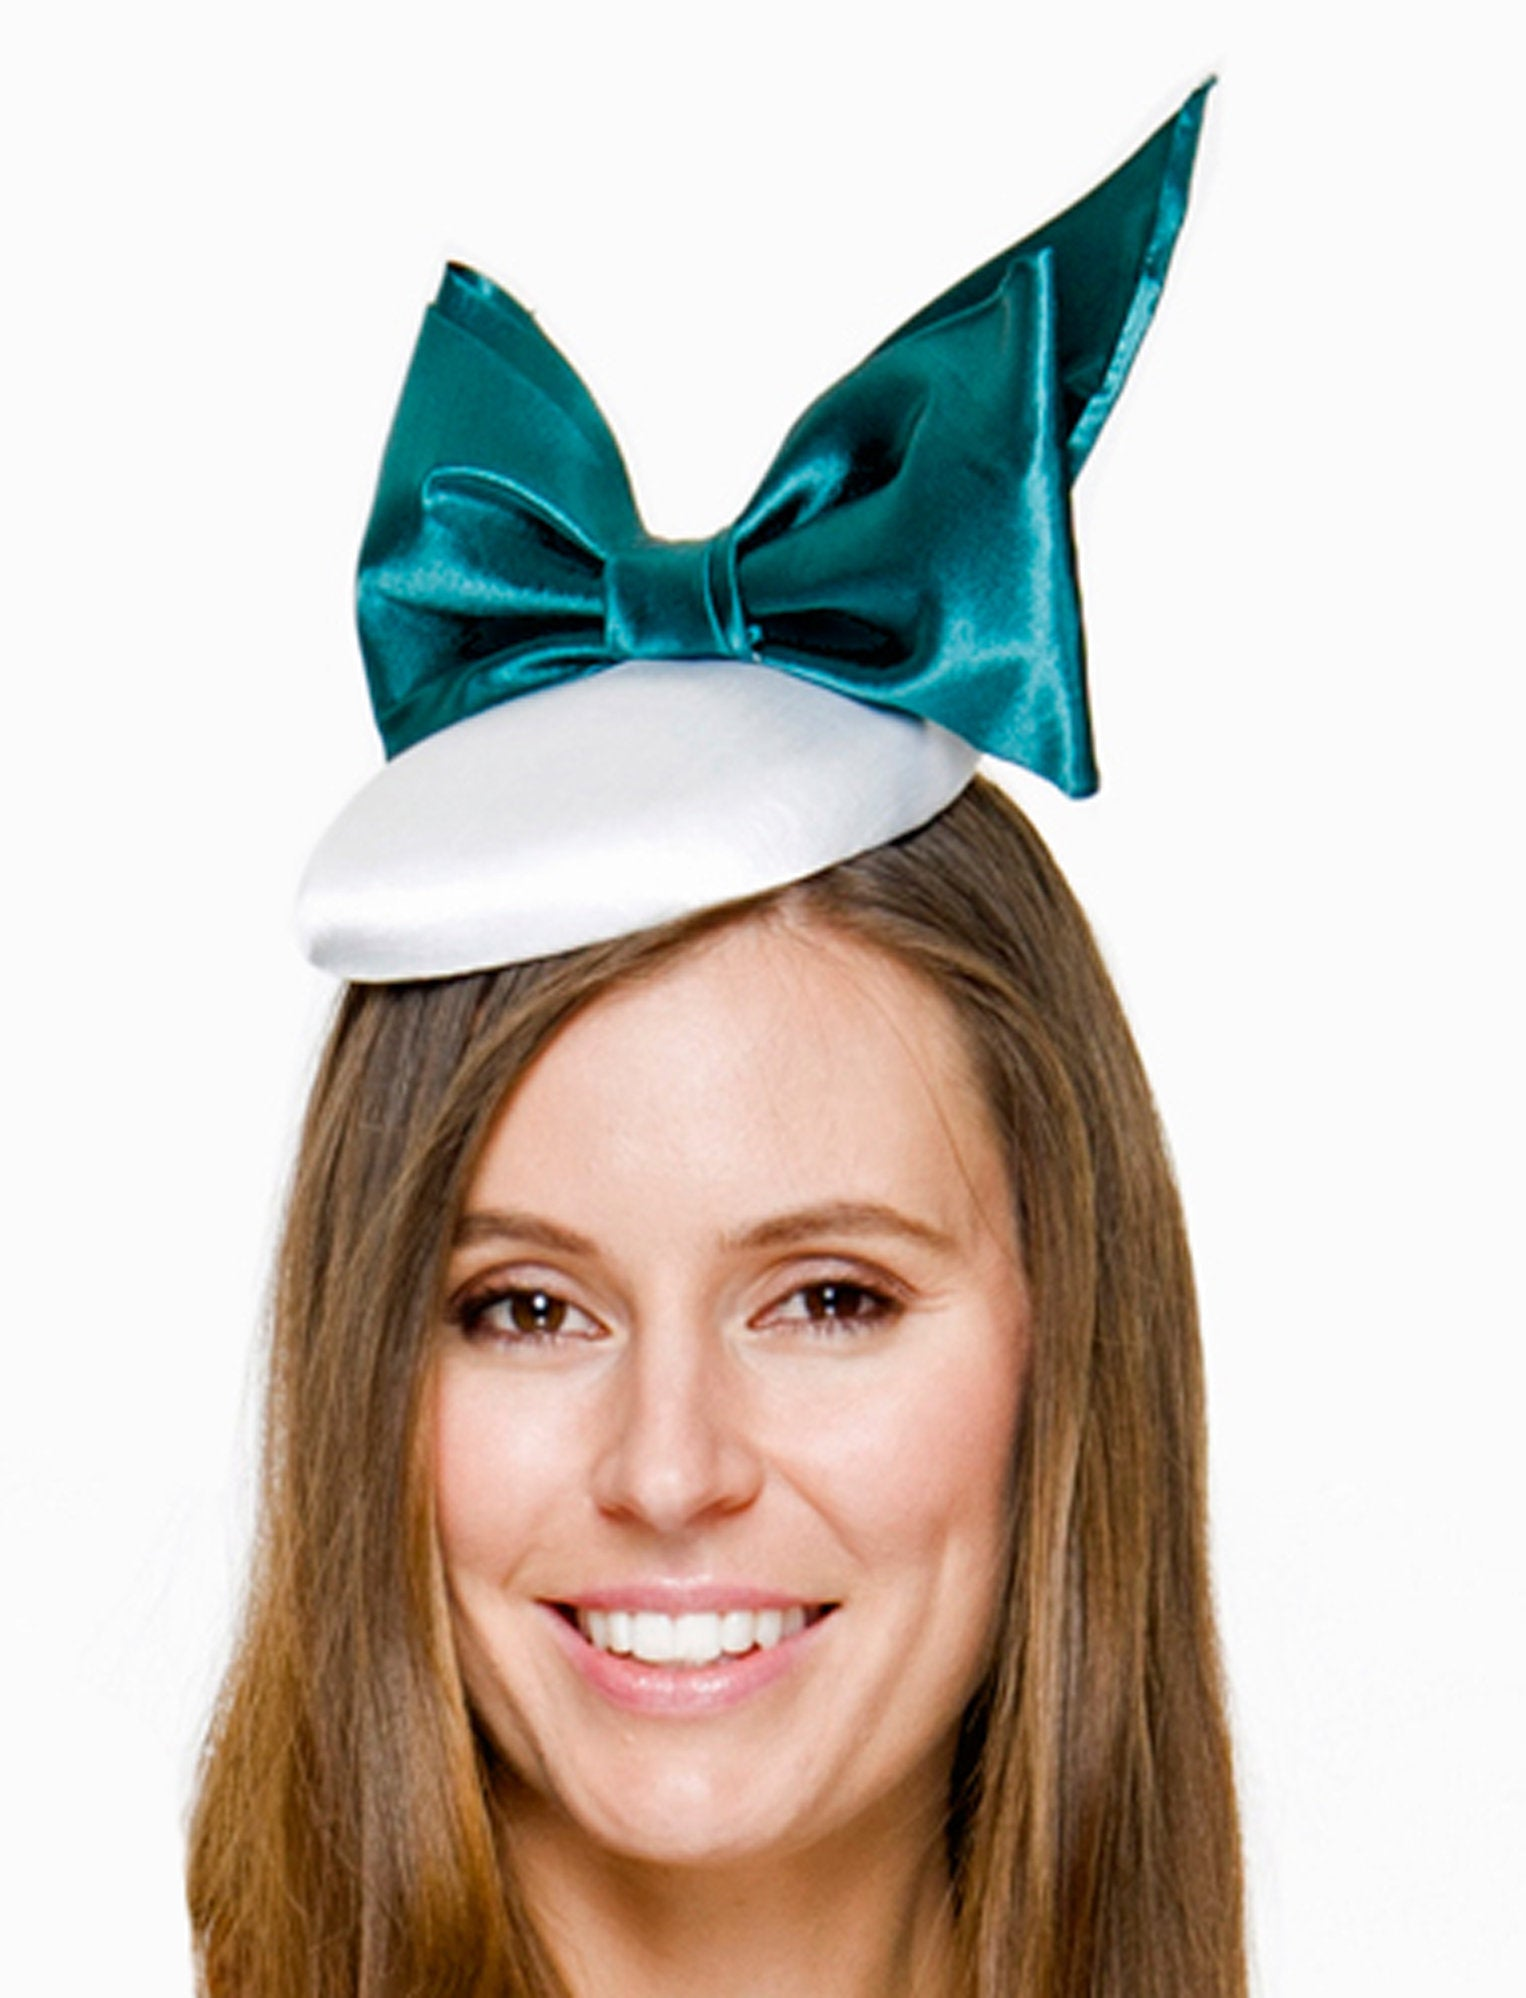 SALE item* Lena Two-Tone Turquoise Green & White Fascinator, Kentucky Derby Hat, Ladies Cocktail Hat, Derby Hats for Women, Green Royal Hat